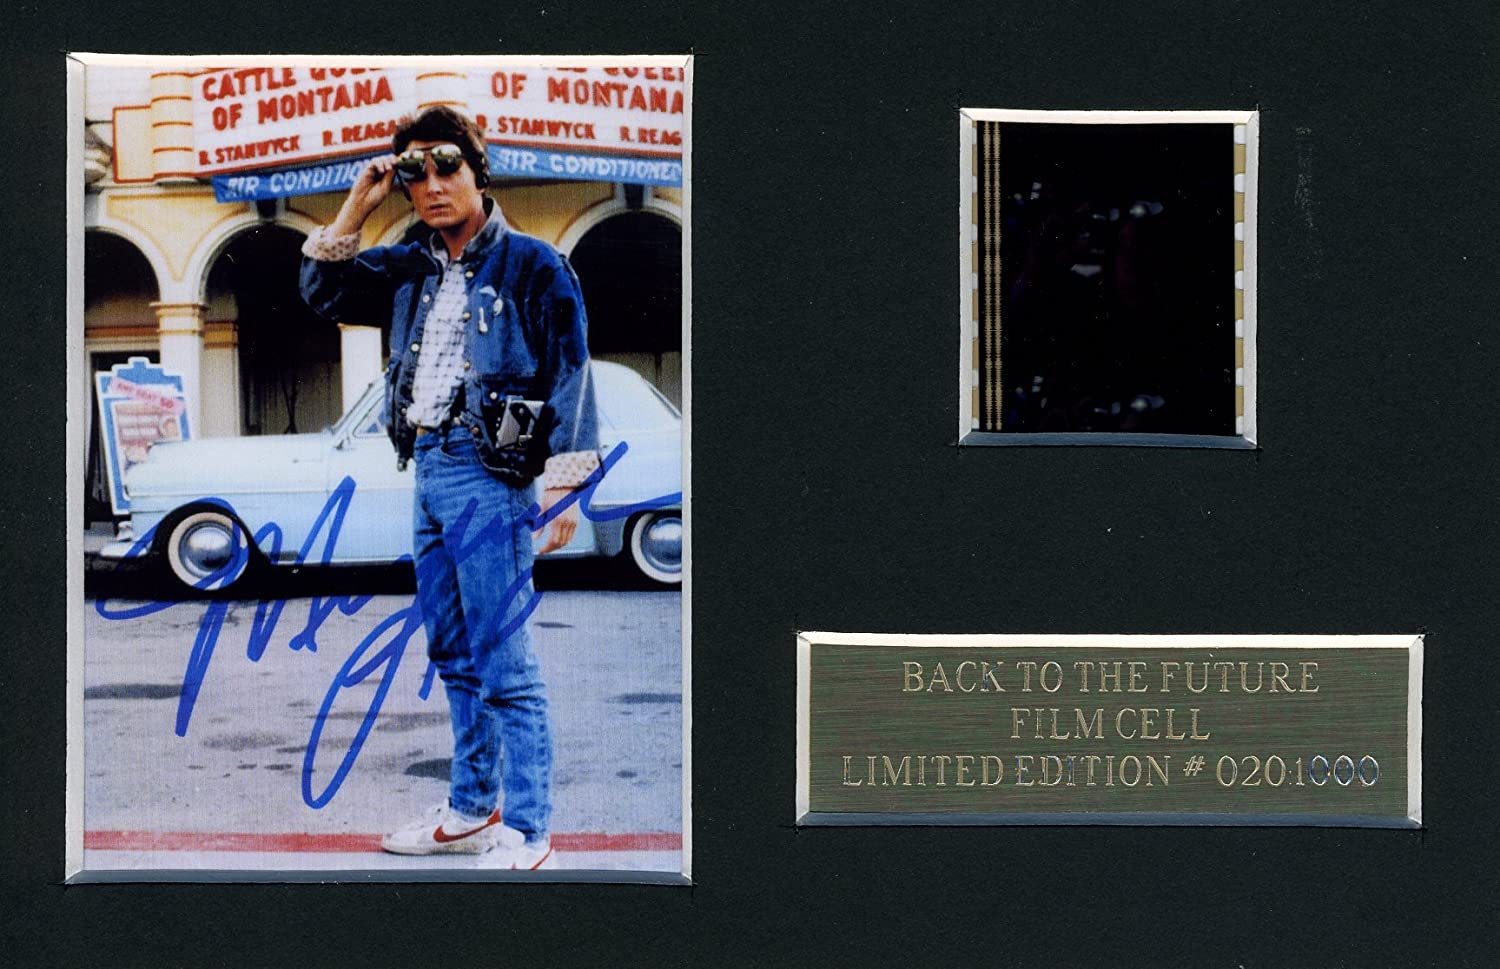 BACK TO THE FUTURE FILM CELL MOVIE MEMORABILIA M